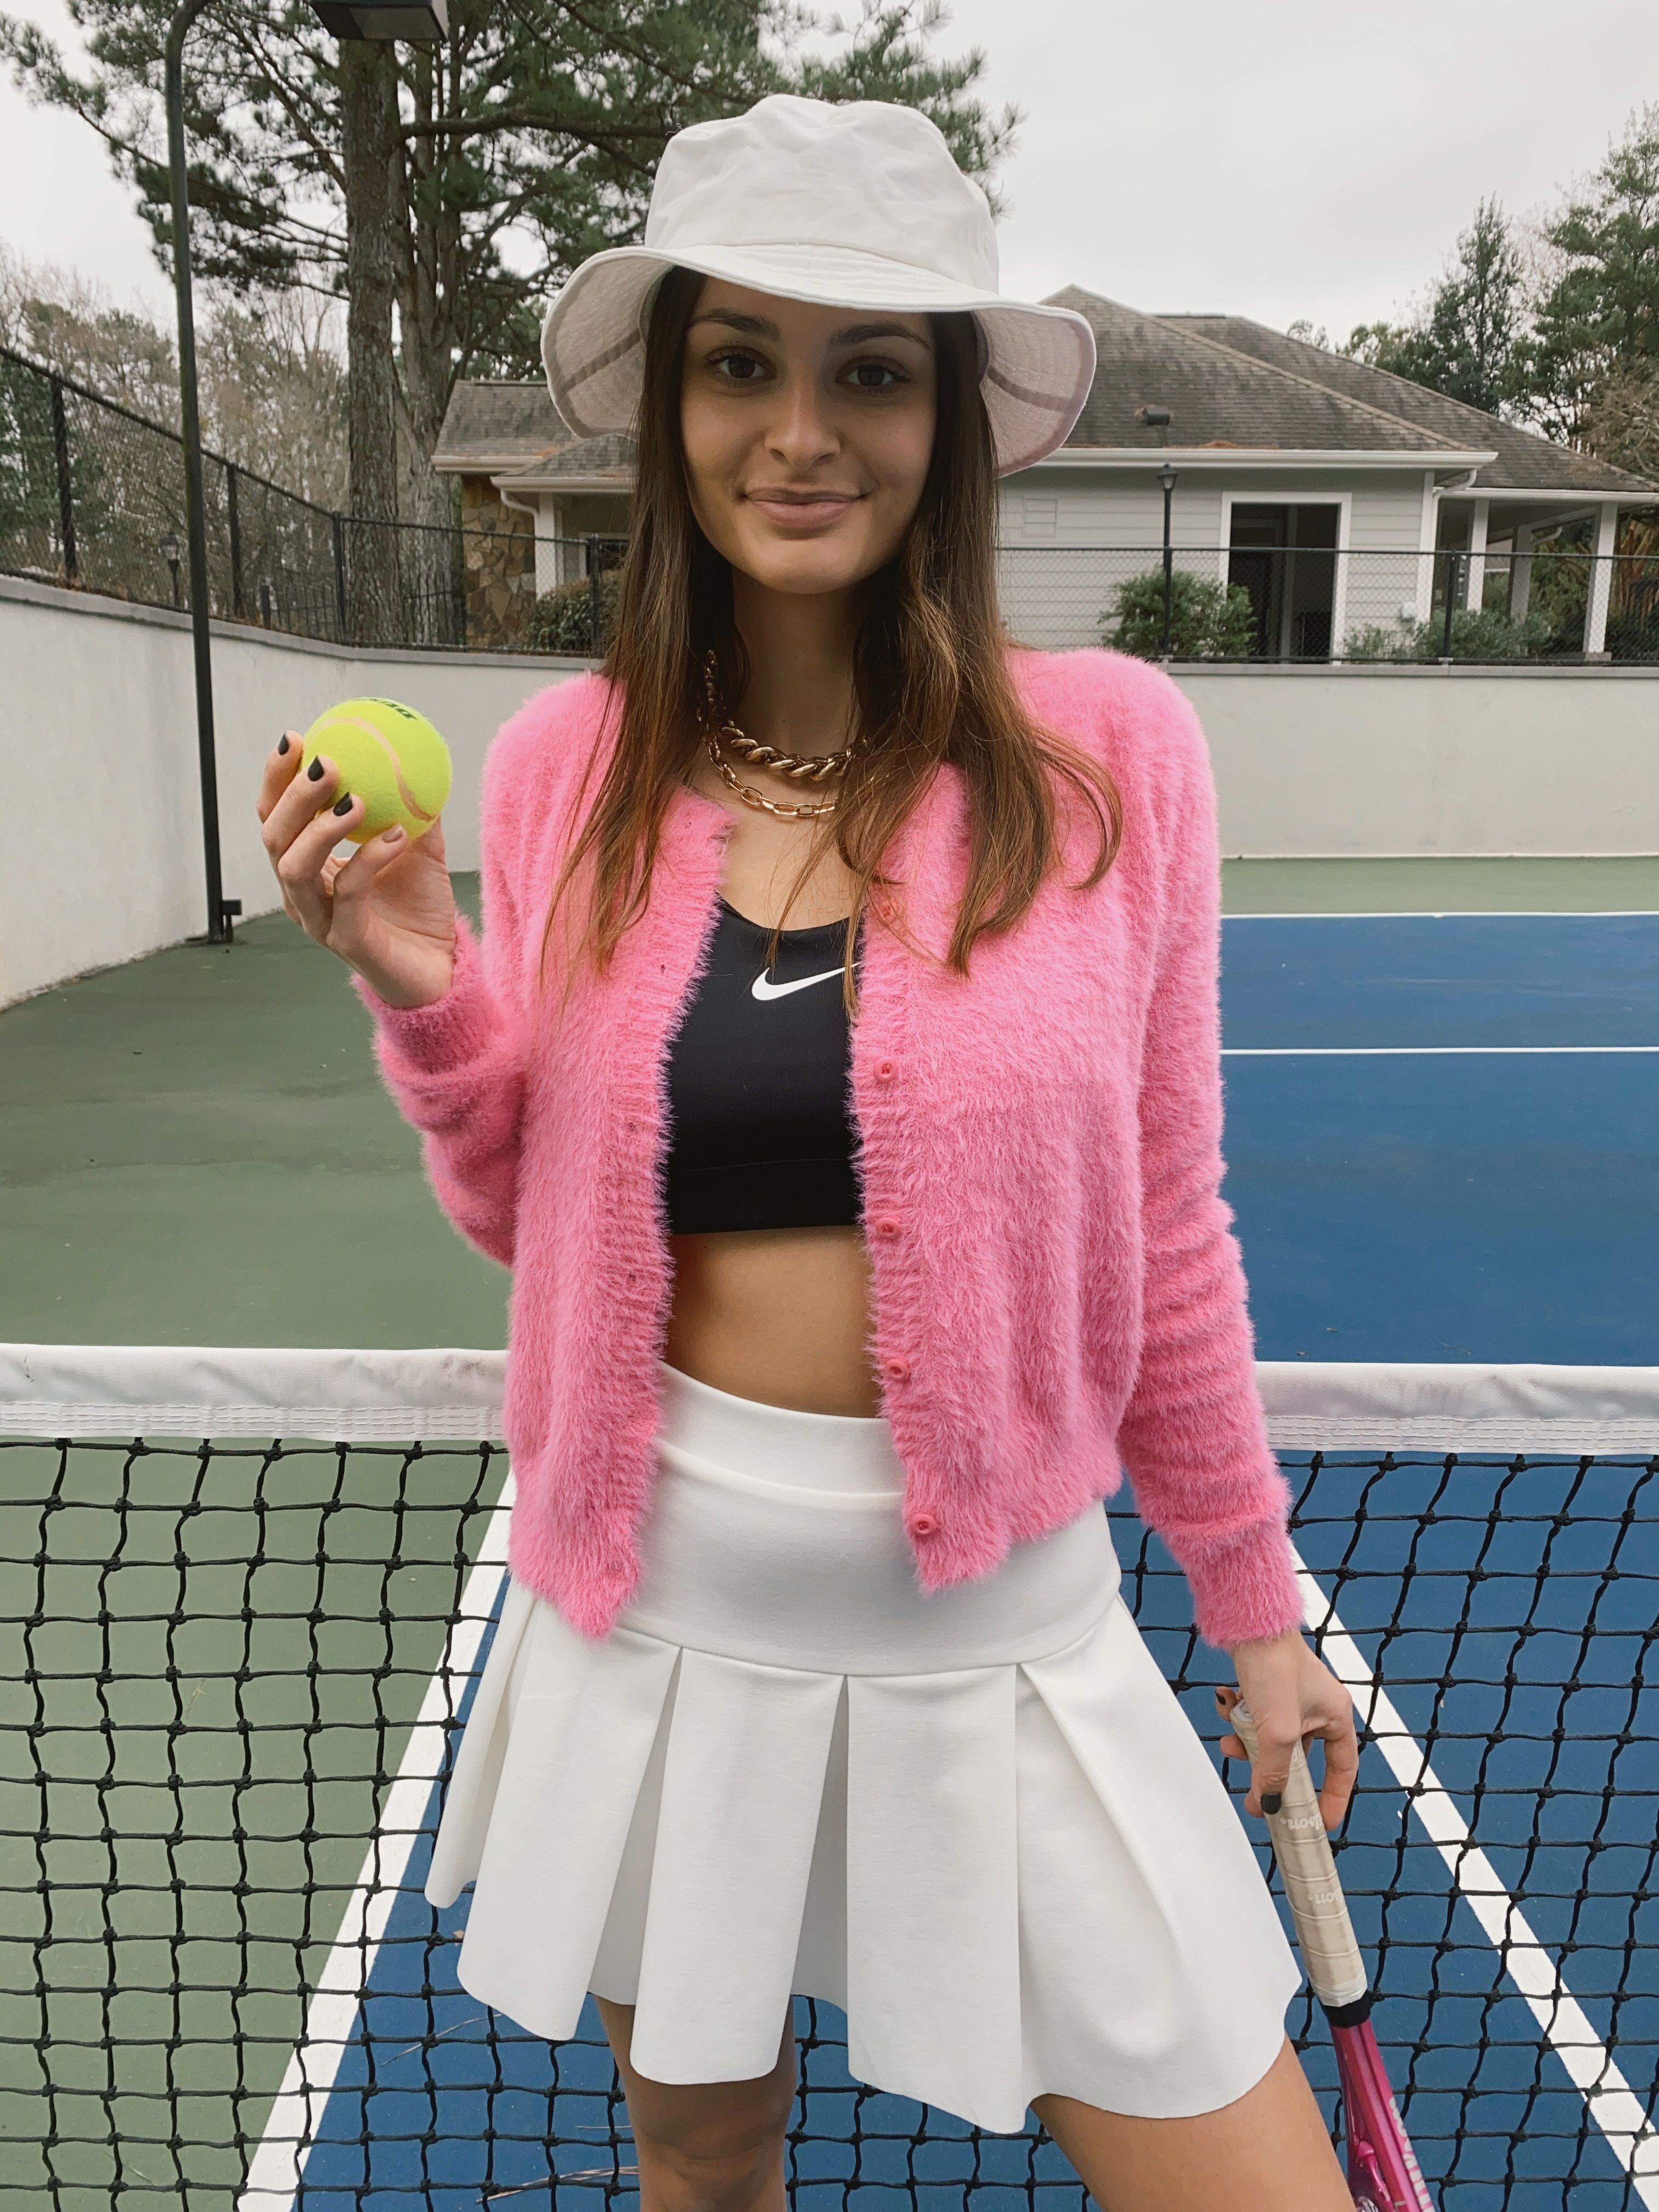 Princess Polly Outfit Cute Tennis Outfit Tennis Skirt Outfit Tennis Skirt White Tennis Skirt [ 4032 x 3024 Pixel ]